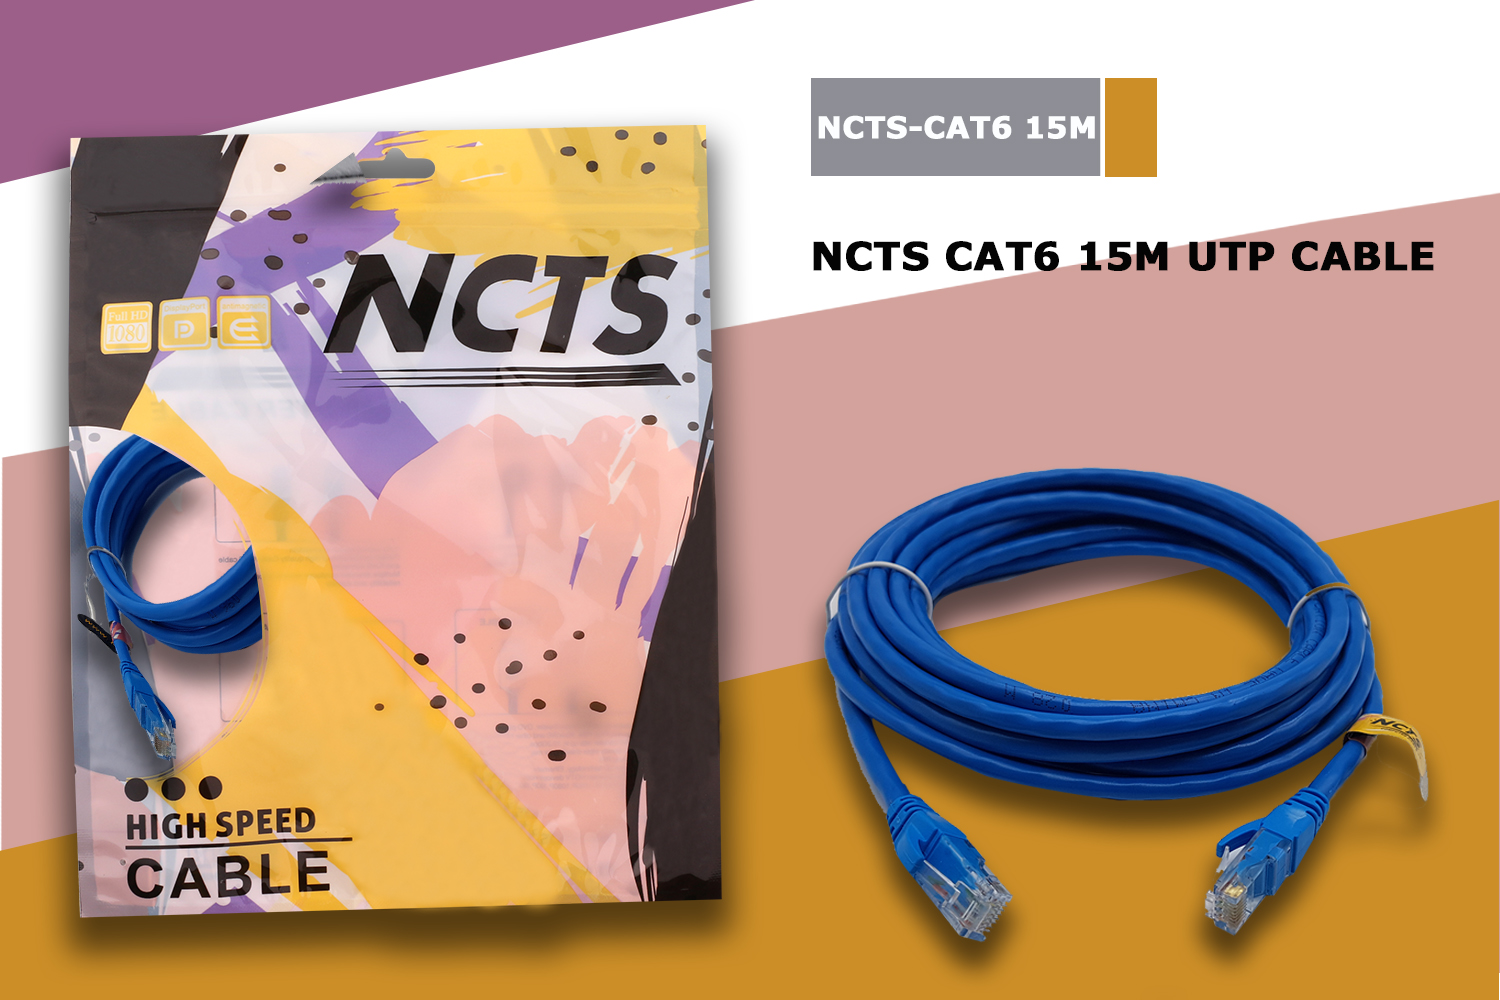 NCTS UTP CABLE CAT6 15M